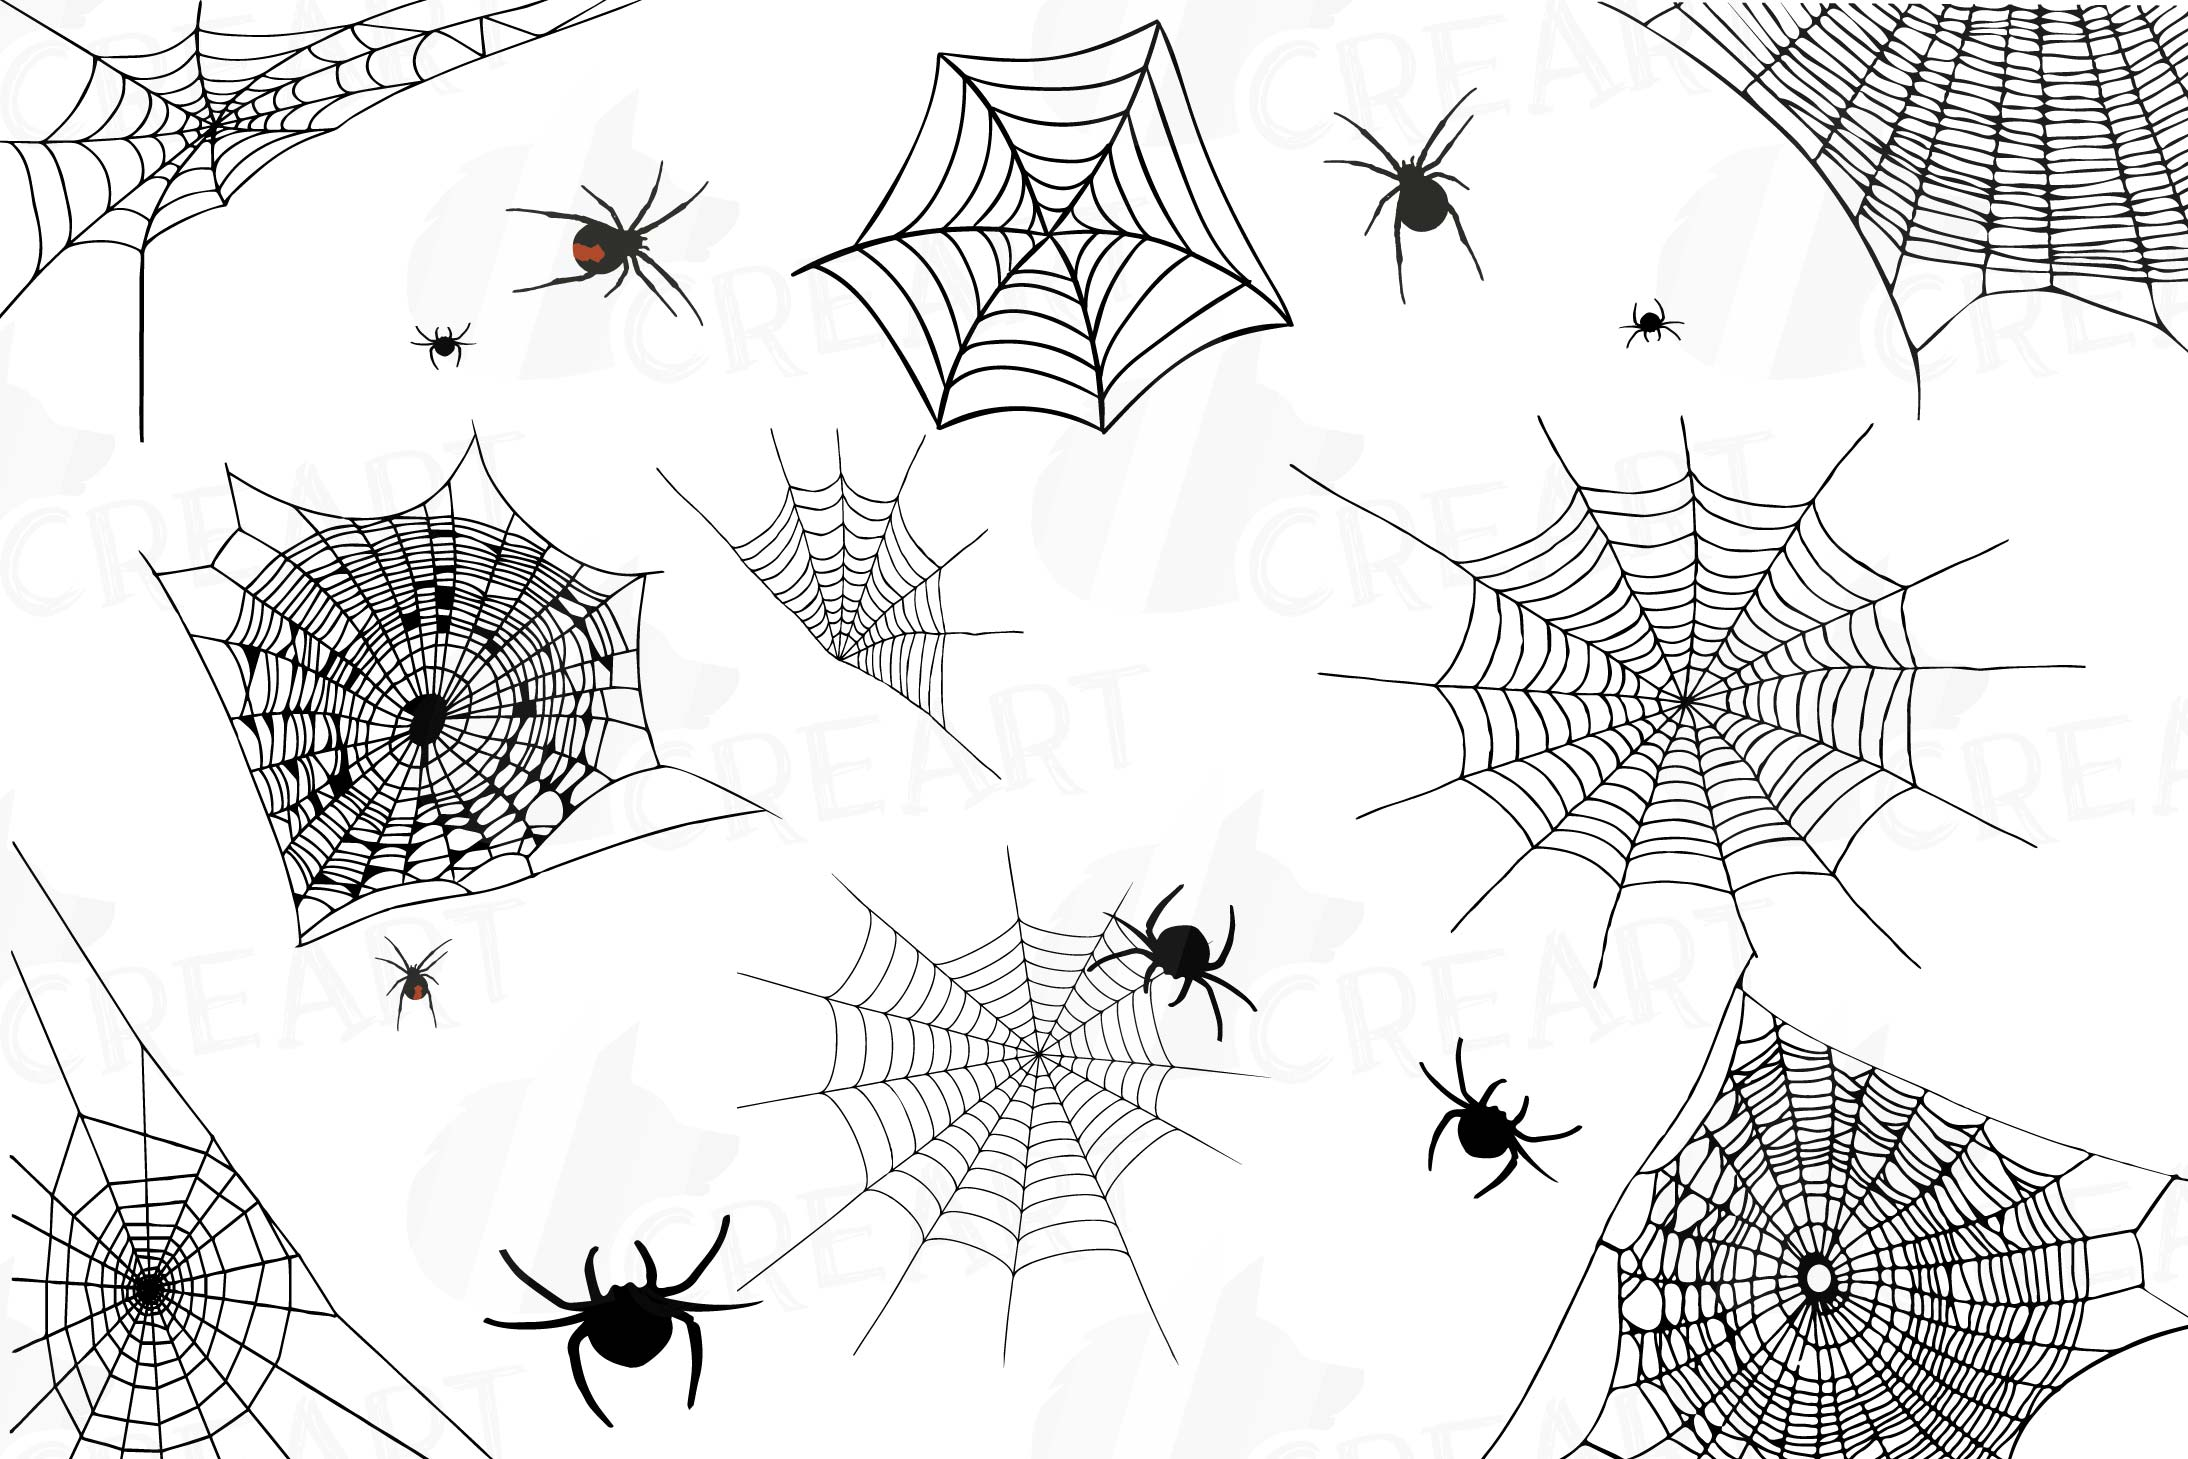 Spider web silhouette clipart png black and white Spiders and Spider webs silhouettes clip art pack, Halloween png black and white